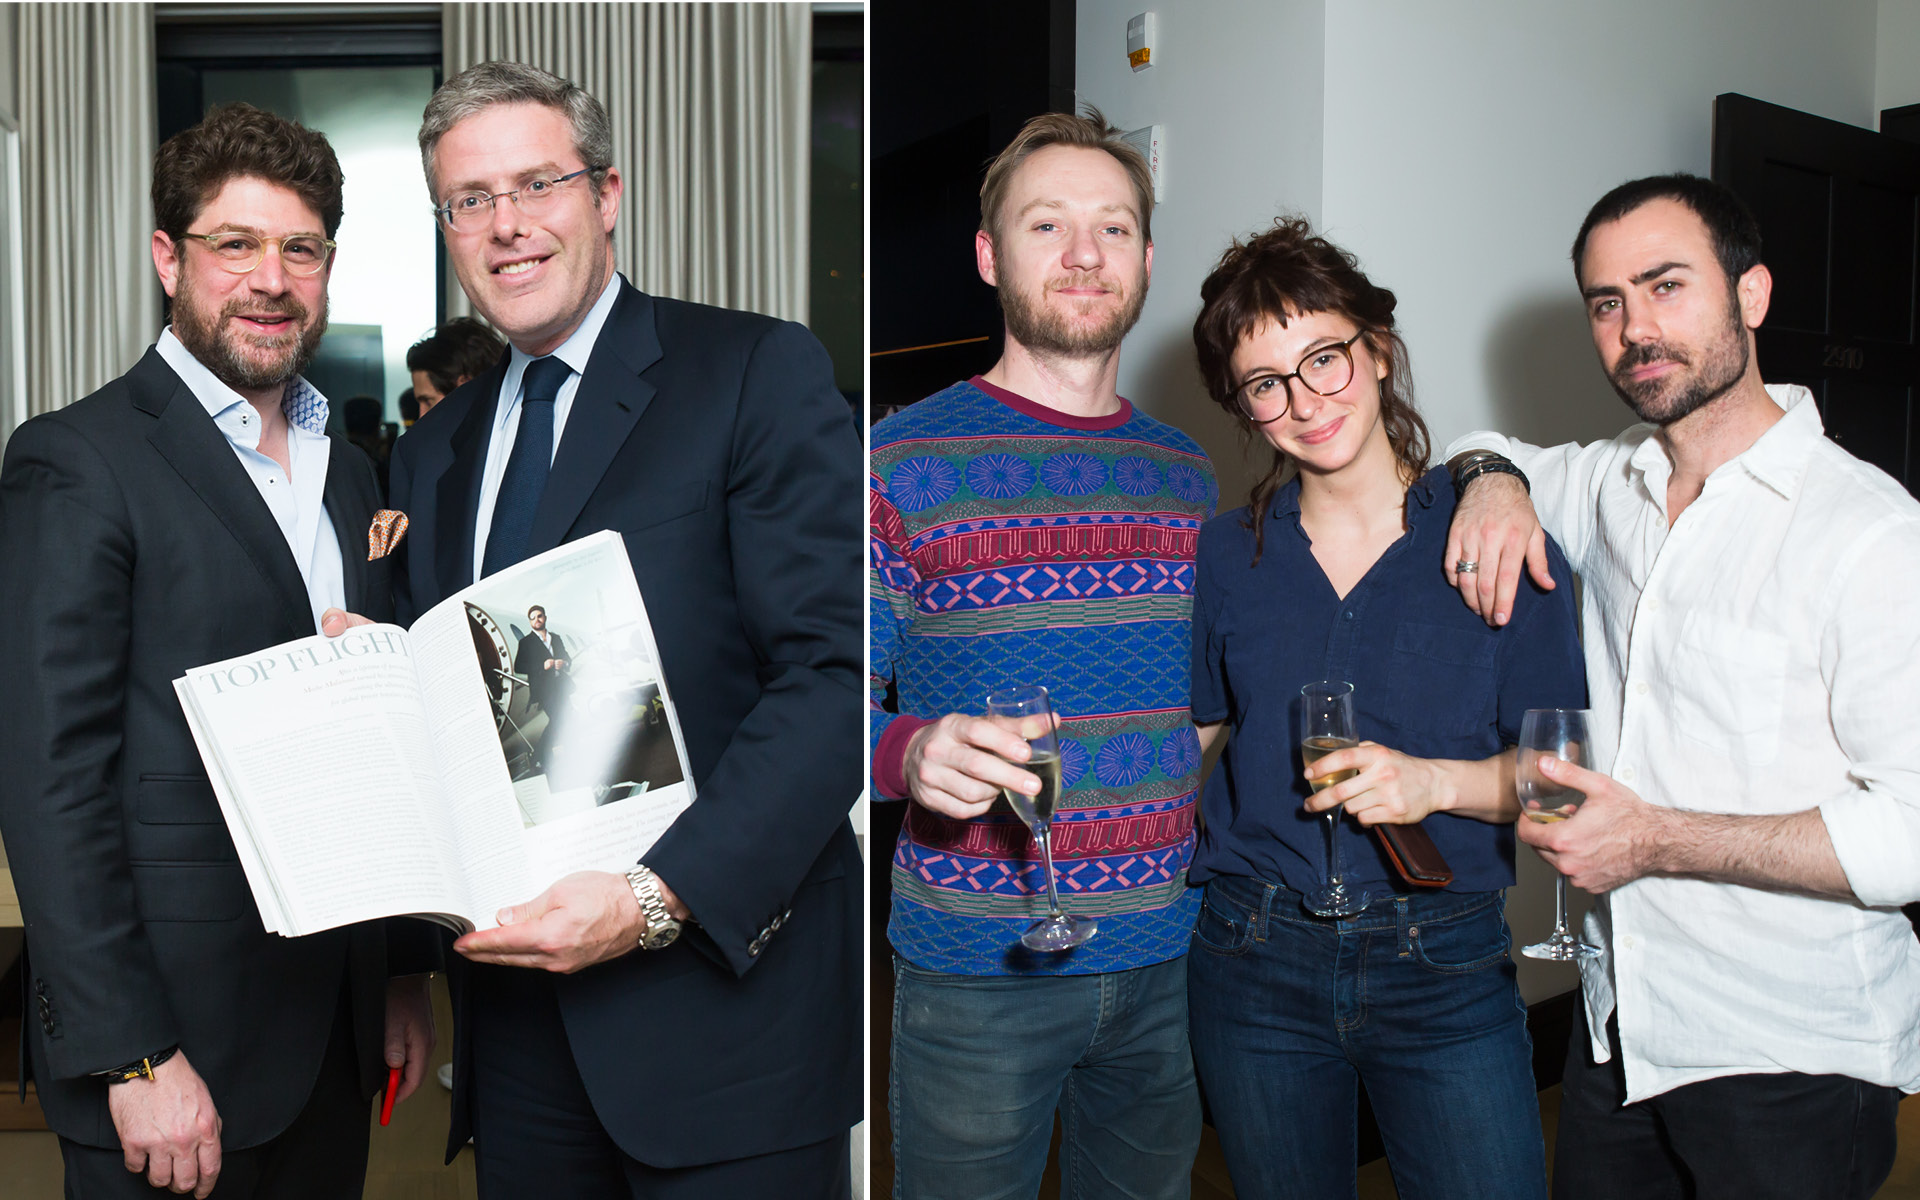 Left: Moshe Malamud and David Scharf; Right: Meagan Glesser and Schweiger Roy, at Edition Hotel, celebrating Maxwell birthday and Spirit & Flesh magazine cover story by Mark Seliger